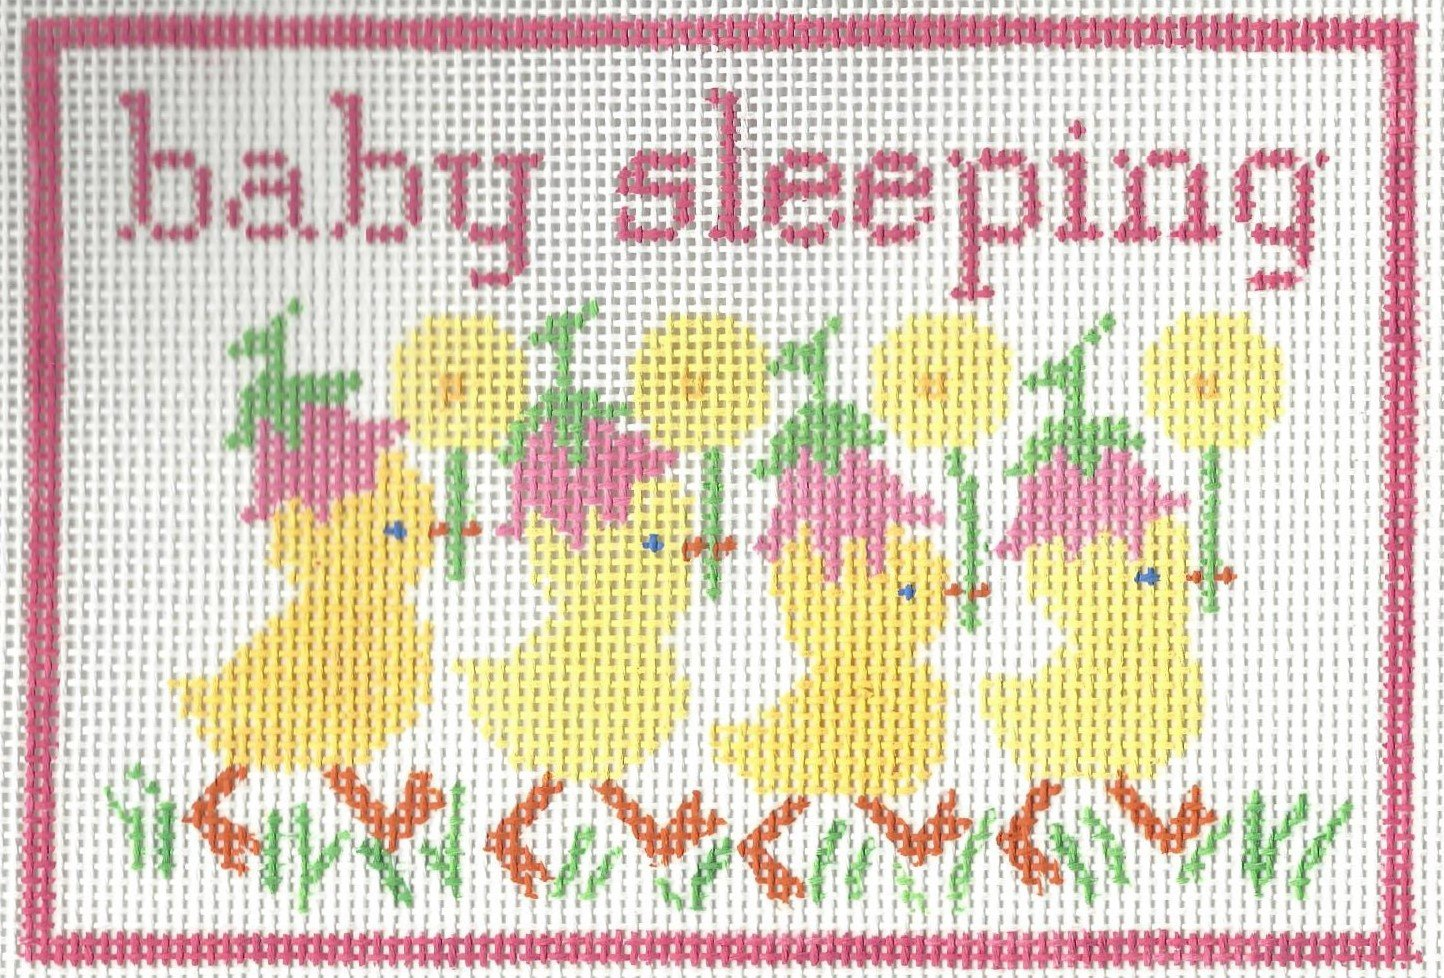 Baby Sleeping with Ducks - Pink